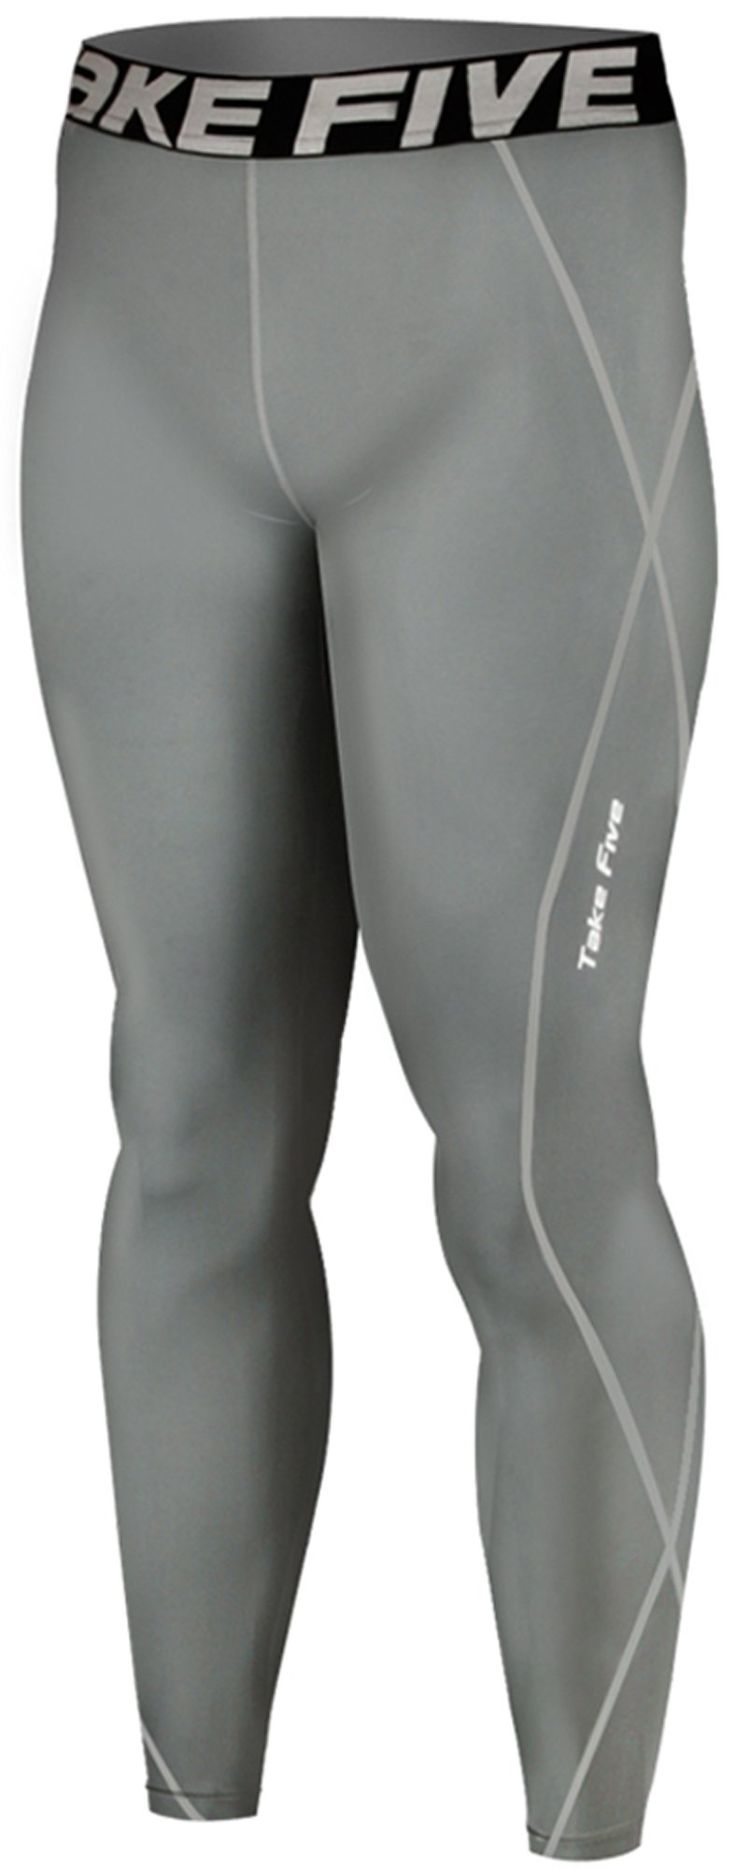 New 019 Skin Tights Compression Leggings Base Layer Grey Running Pants Mens (2XL). Men's long Pants compression Tights made using Take Five technology. Compression fit bolsters muscle support and increases circulation. UVA/UVB Protection - Take Five compressoin protects your skin from UVA/UVB radiation during your outdoor workout. Great for skiing, snowboarding, training, competing, and all weather sports and activities. Machine washable.